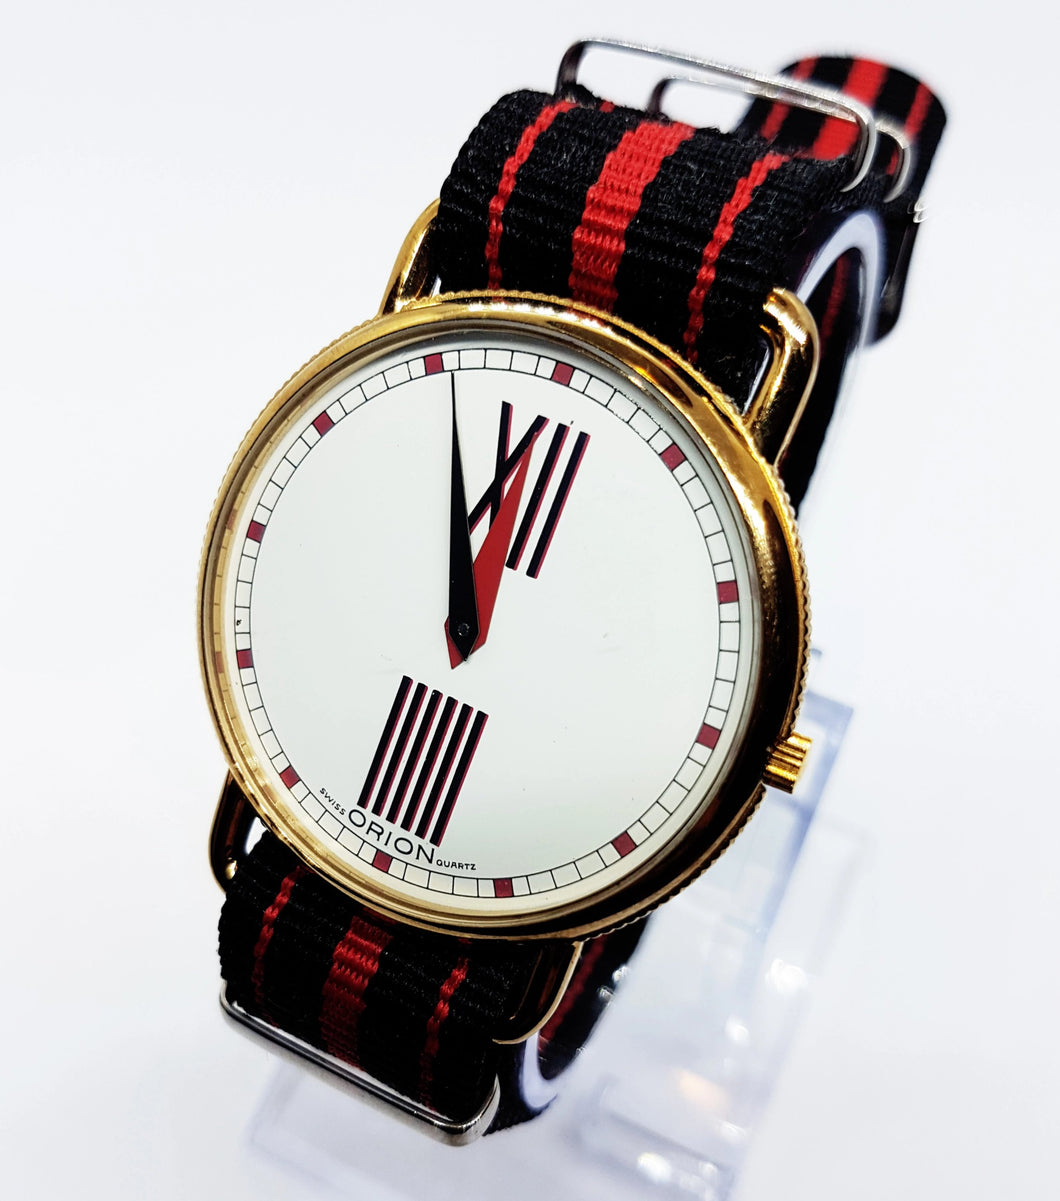 Limited Edition Orion Vintage Quartz Watch | Swiss Made Watches - Vintage Radar